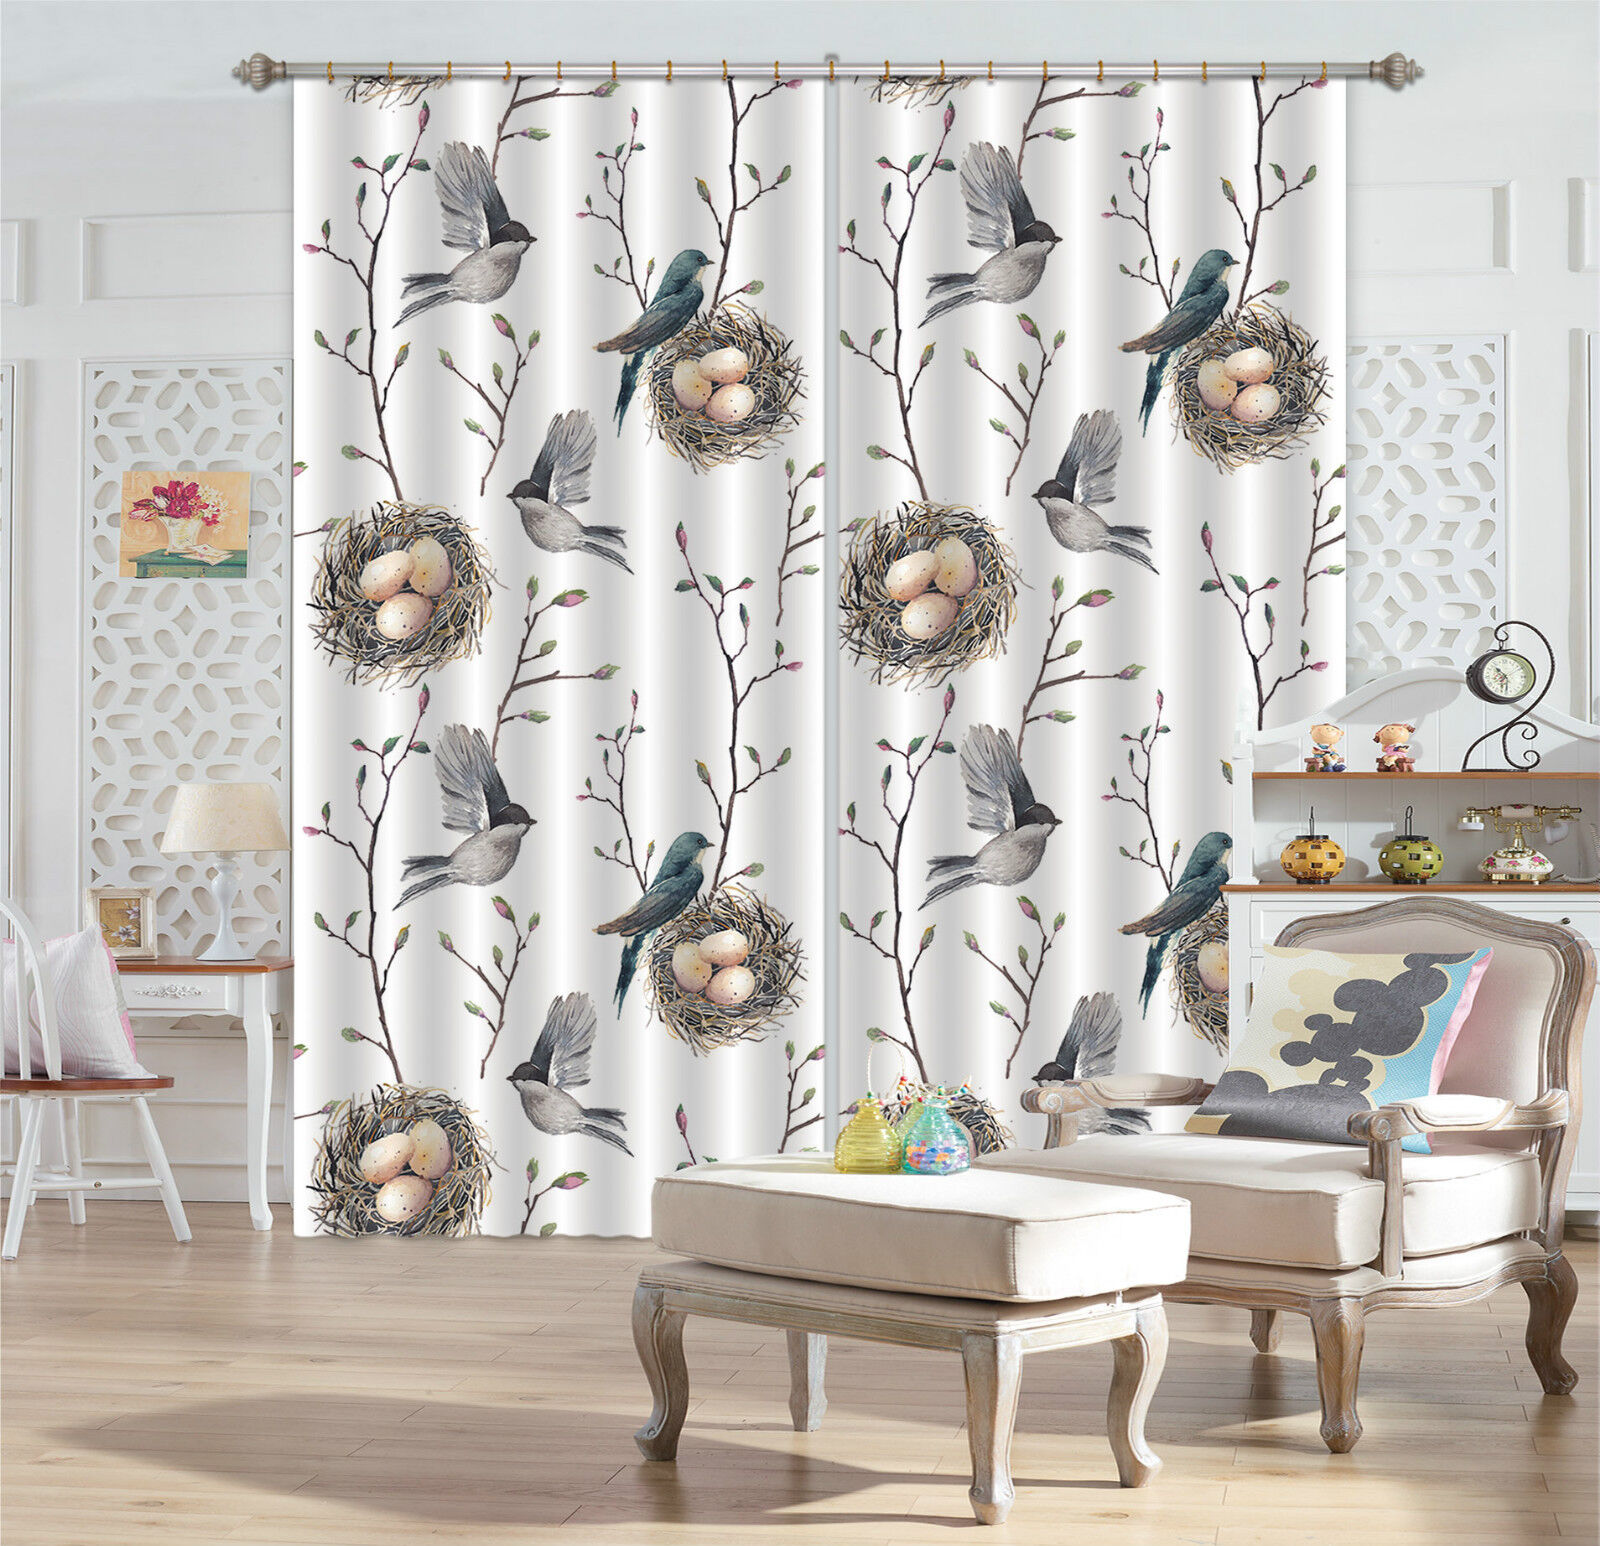 3D Birds Eggs 9 Blockout Photo Curtain Printing Curtains Drapes Fabric Window CA